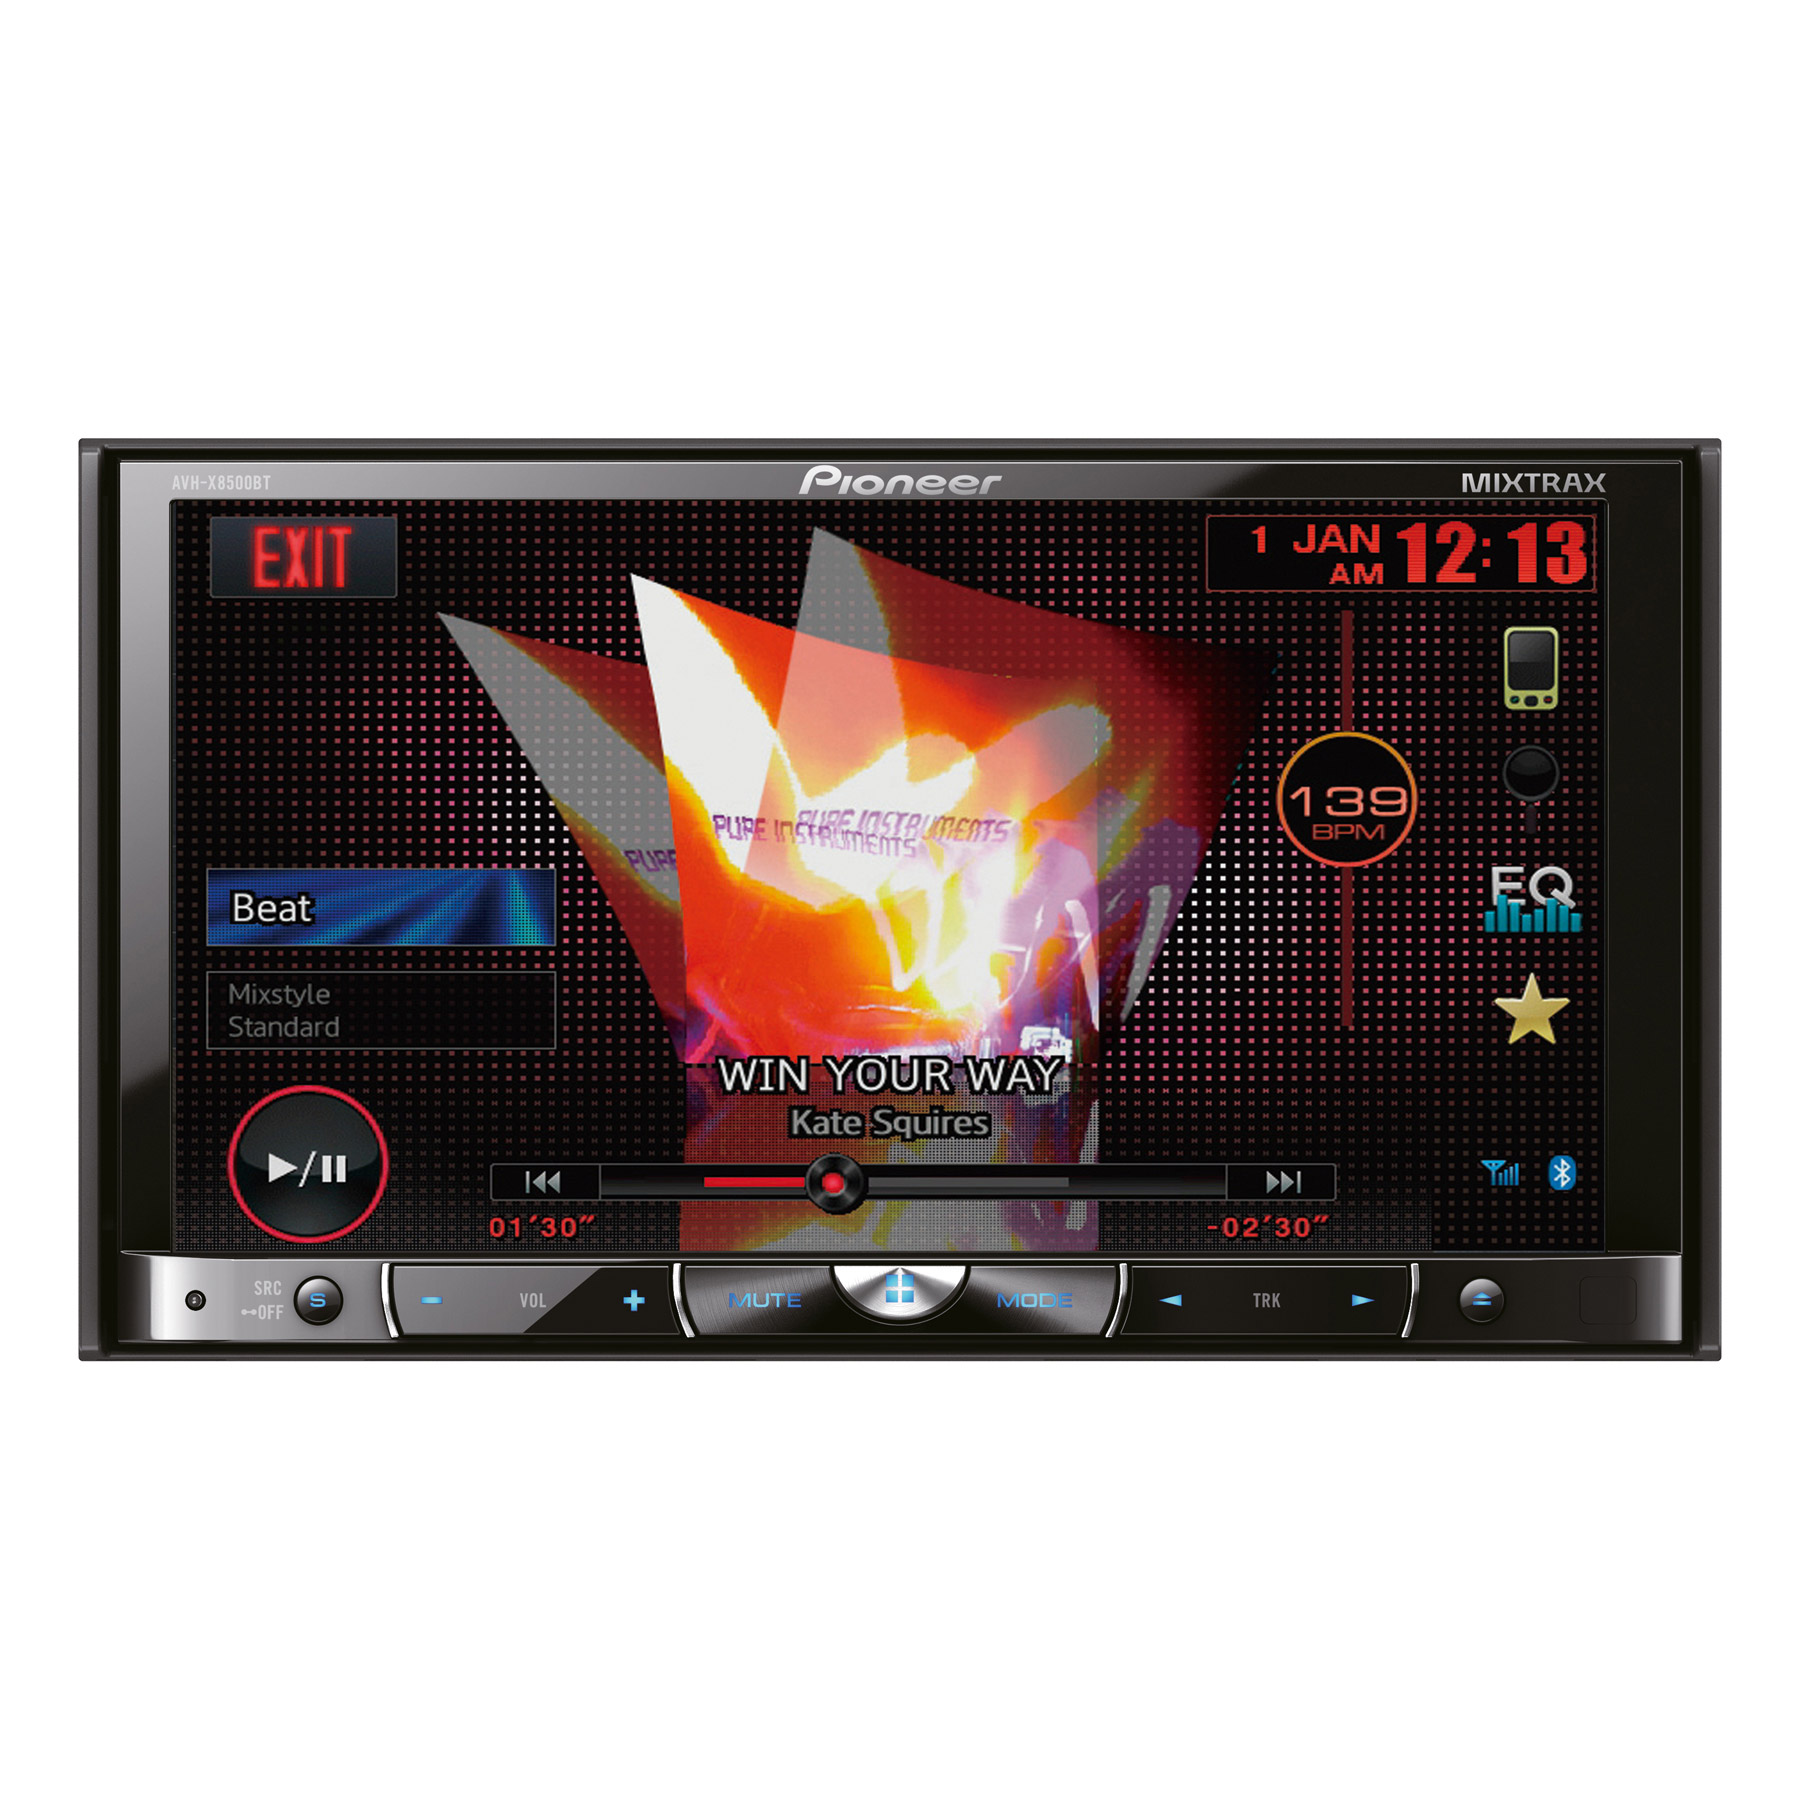 pioneer deh 1500 wiring diagram manual with Wiring Diagram For Pioneer Deh X3600ui on lifiers wiring together with Honda Civic 2014 Wiring Diagram moreover 2 Sony cdx M800 together with 2010 Silverado Stereo Wiring Diagram further Pioneer Dxt X2769ui Wiring Diagram.